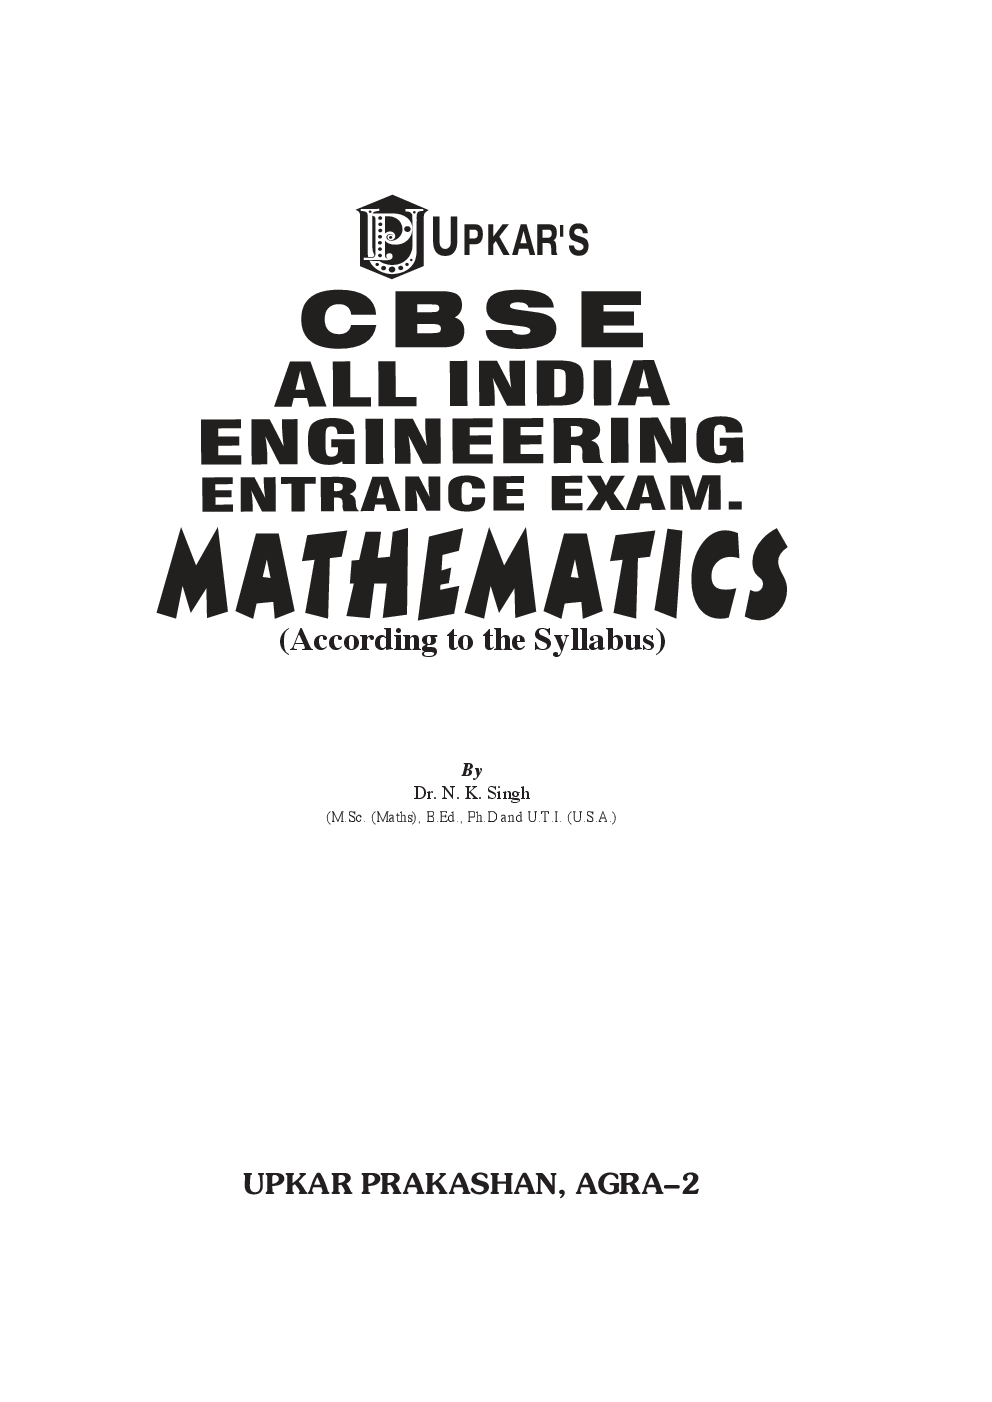 Download CBSE All India Engineering Entrance Exam